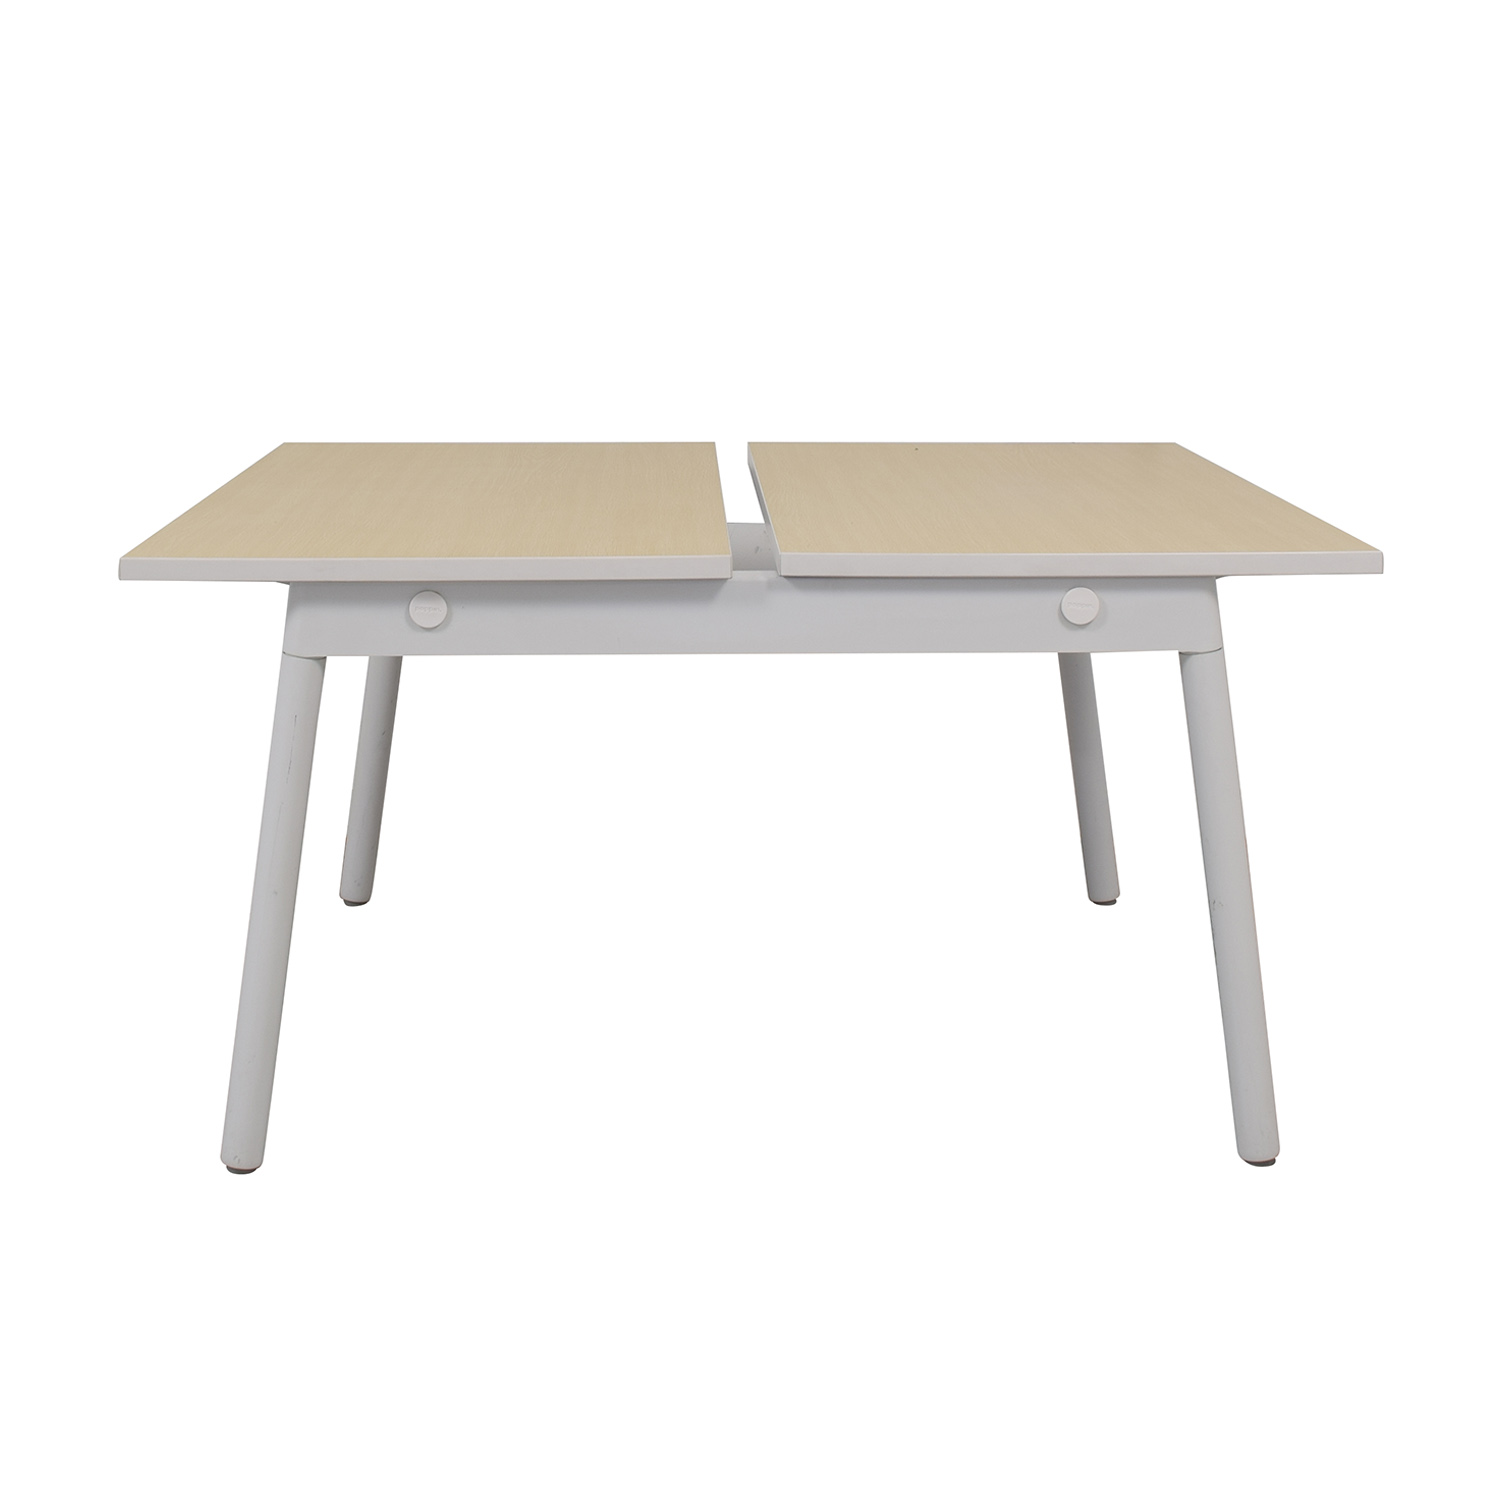 Poppin Poppin Series A Natural Oak Double Desk nj